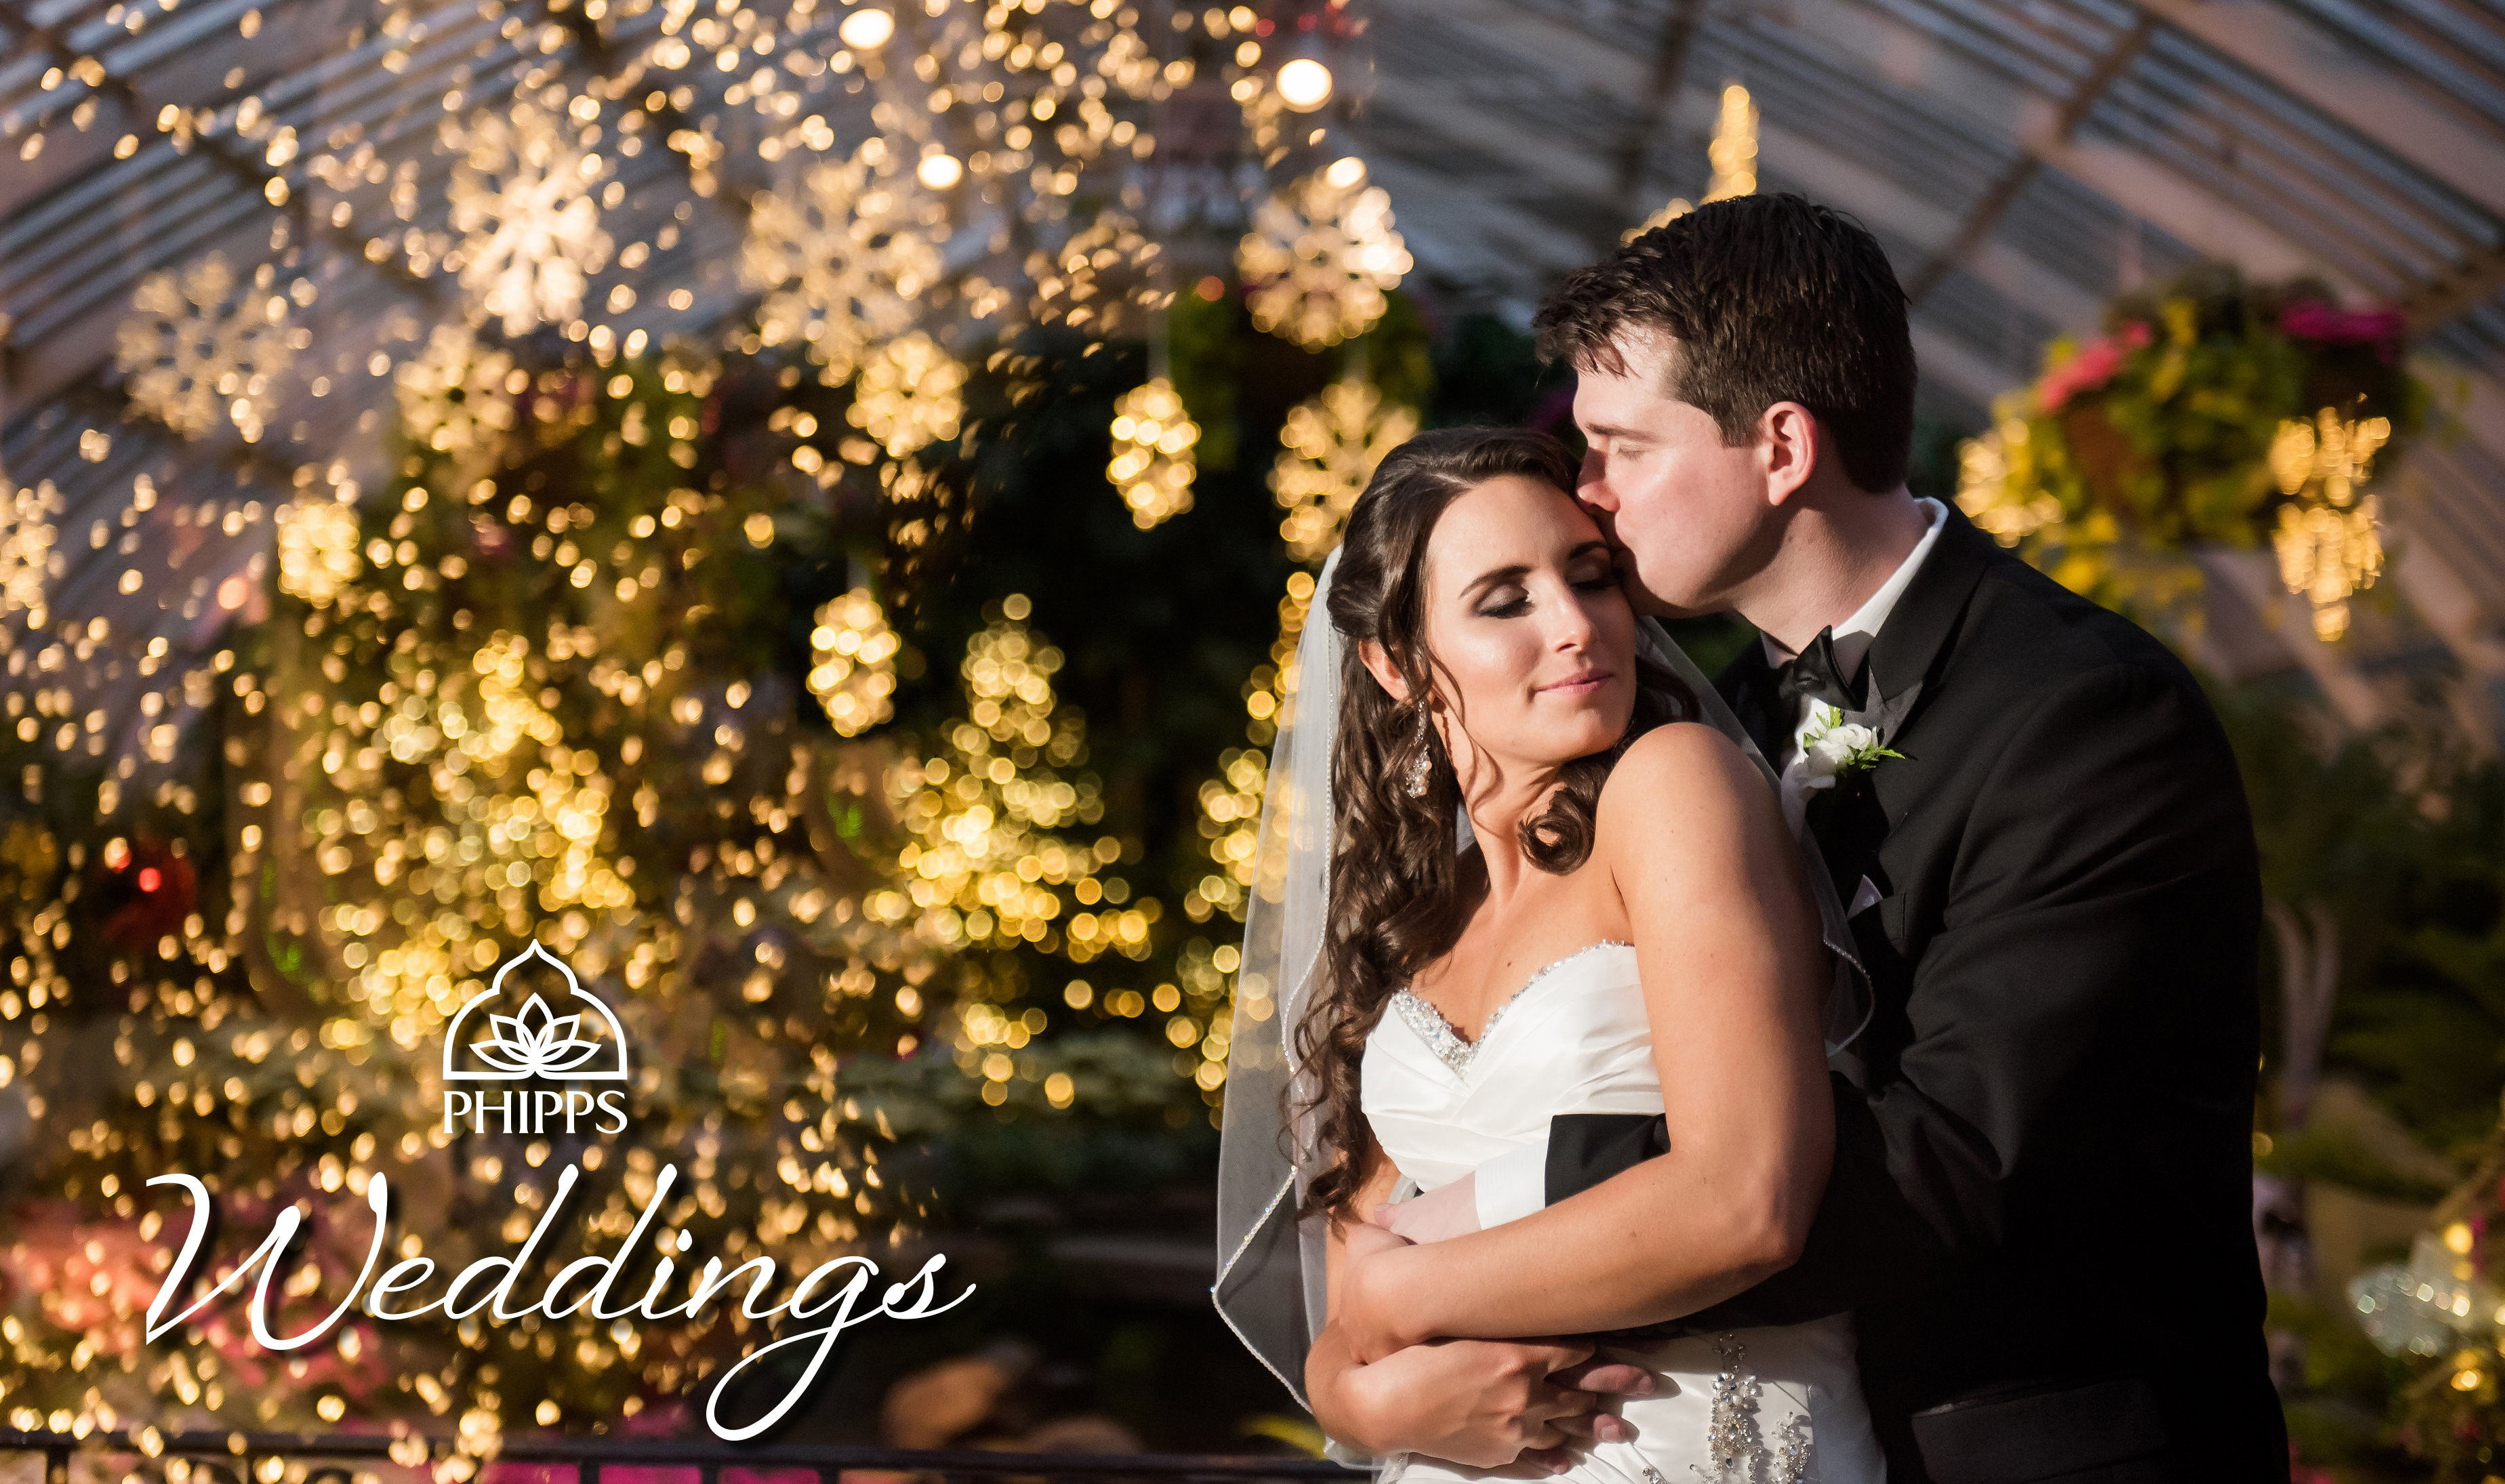 Engagement Season is in Full Bloom at Phipps Conservatory